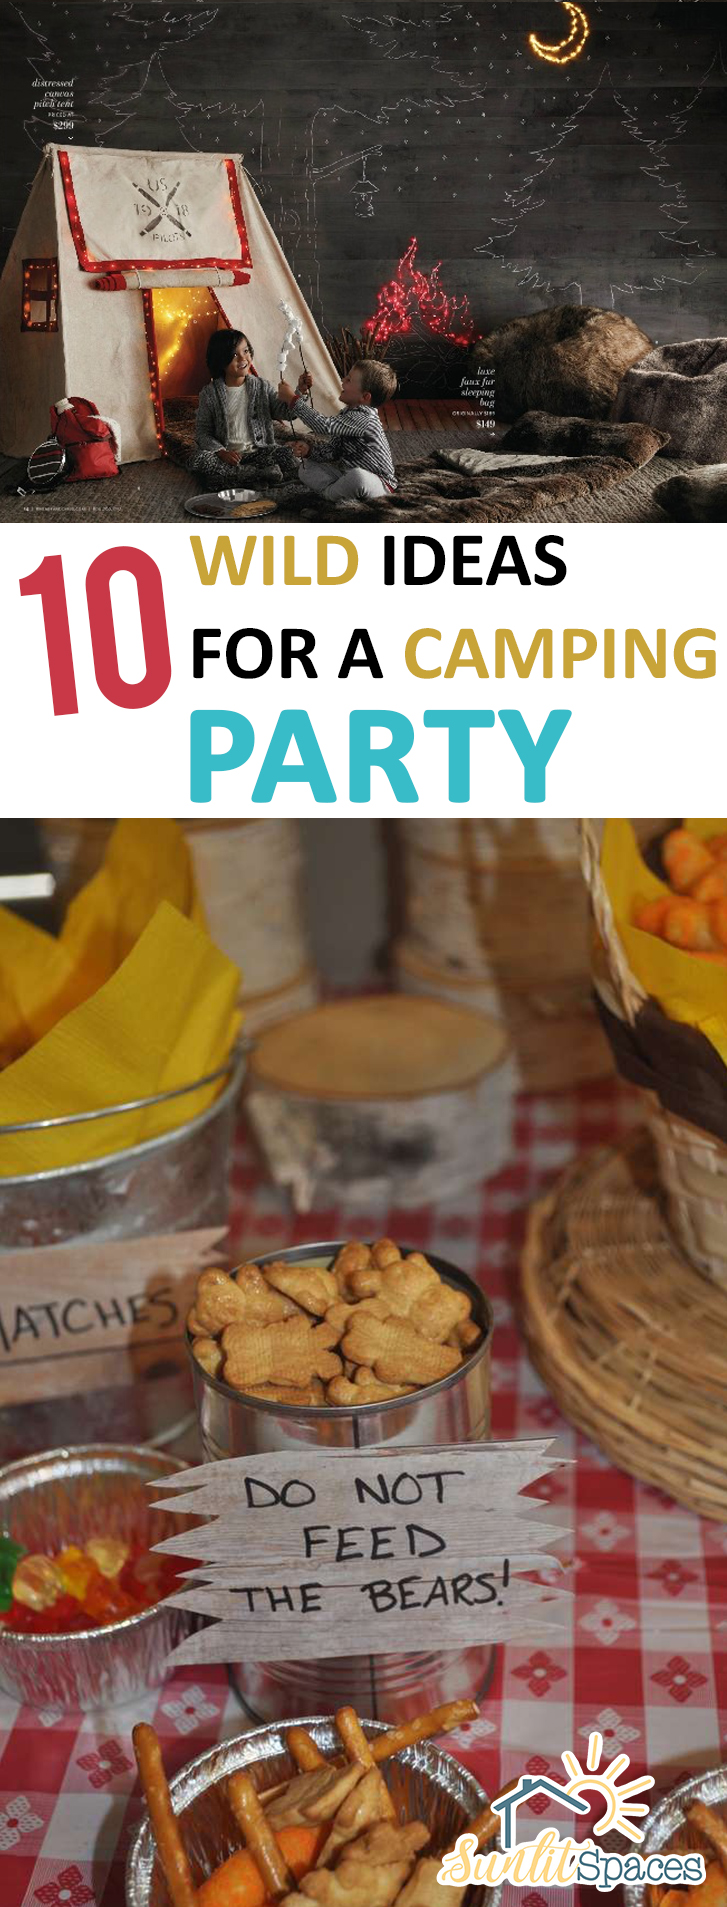 10 Wild Ideas For An Indoor Camping Party